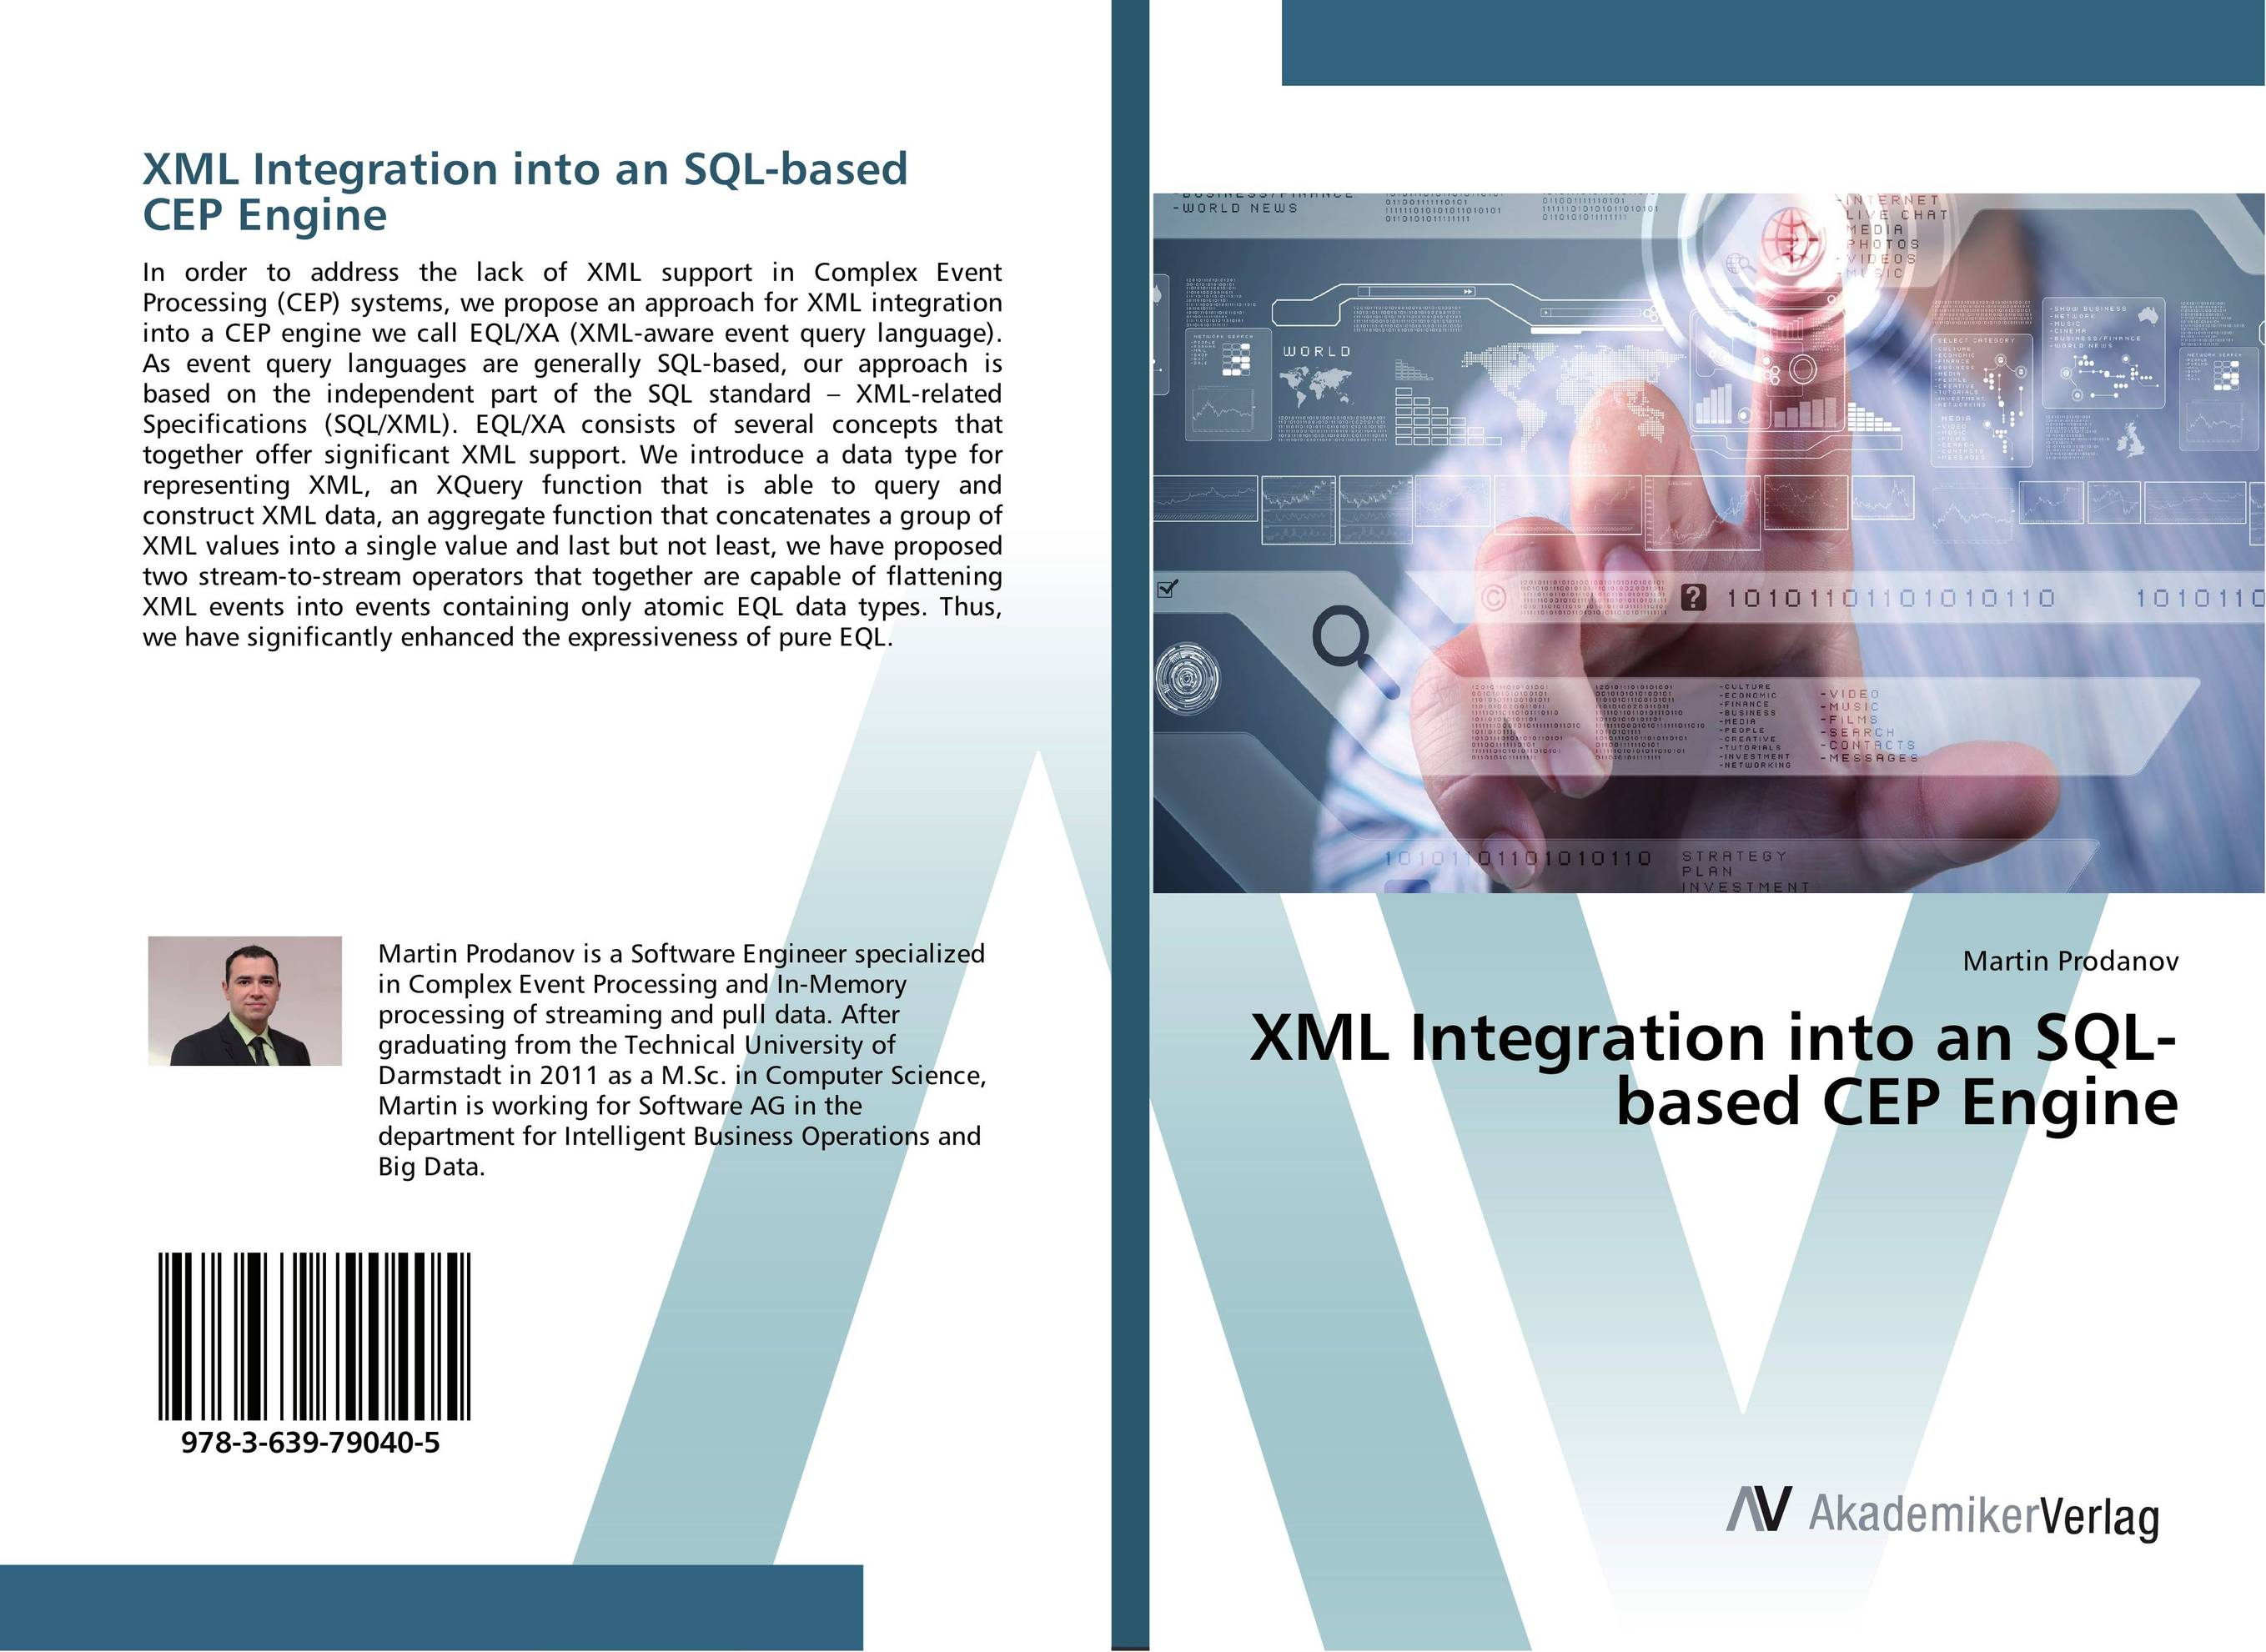 XML Integration into an SQL-based CEP Engine sitemap 200 xml